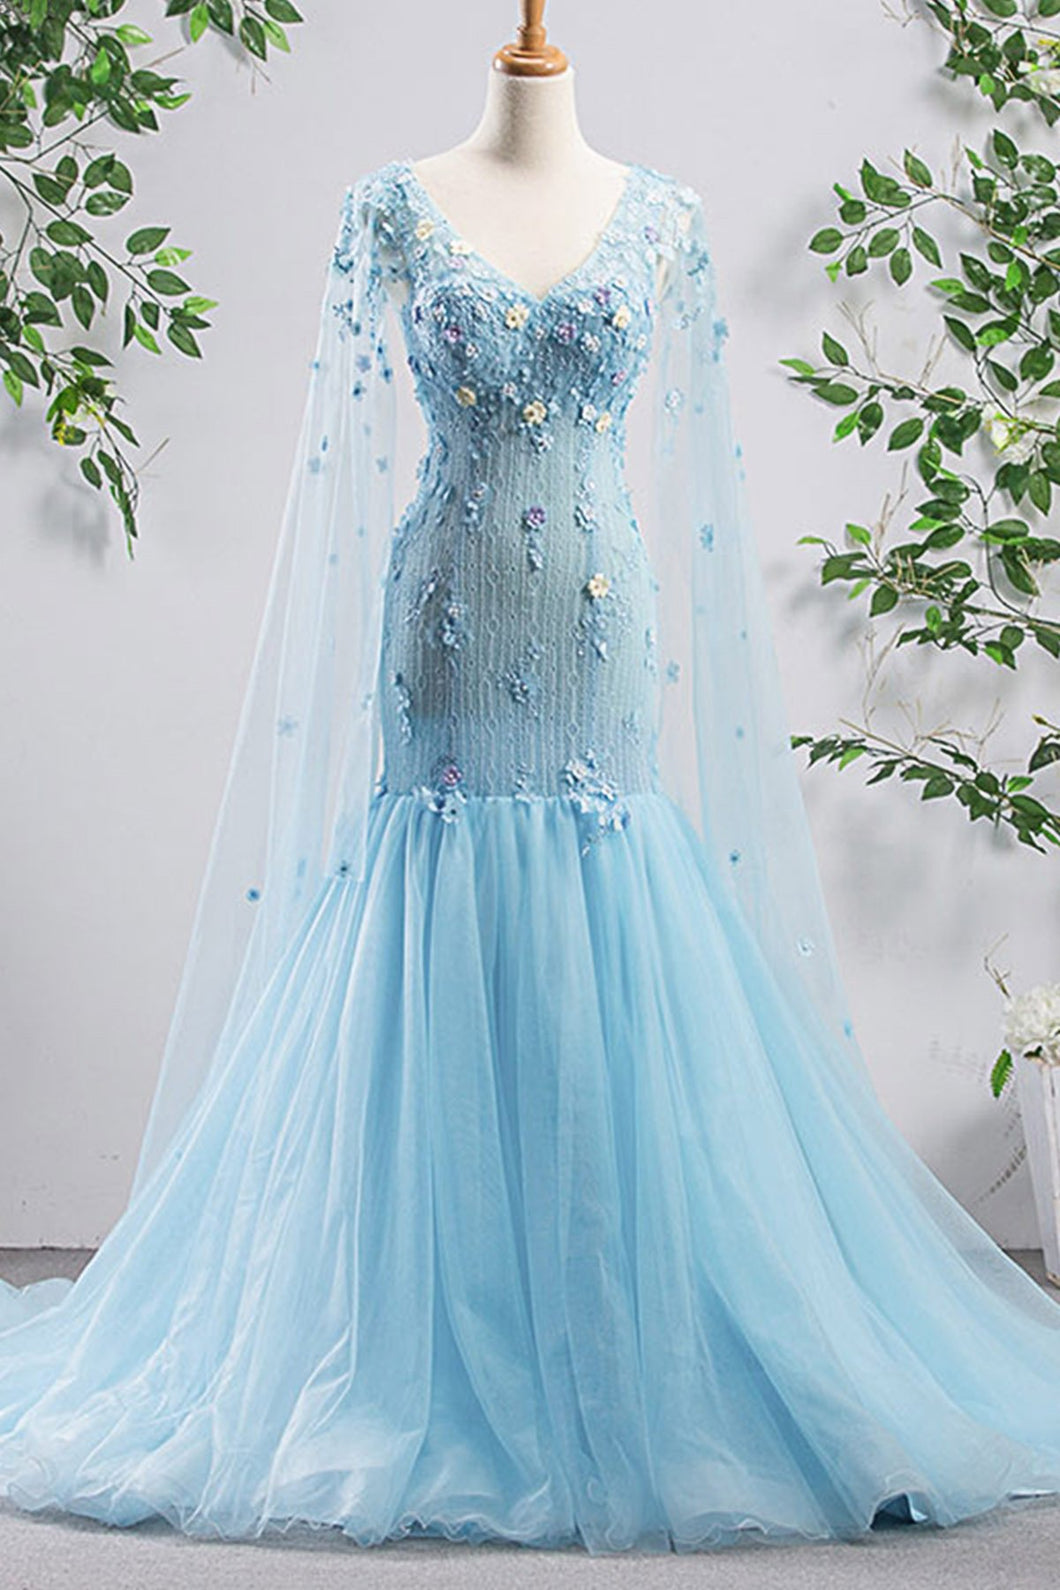 2019 Prom Dresses | Bright Blue Tulle V Neck Long Sleeve Mermaid 3D Lace Applique Evening Dress, Prom Dress